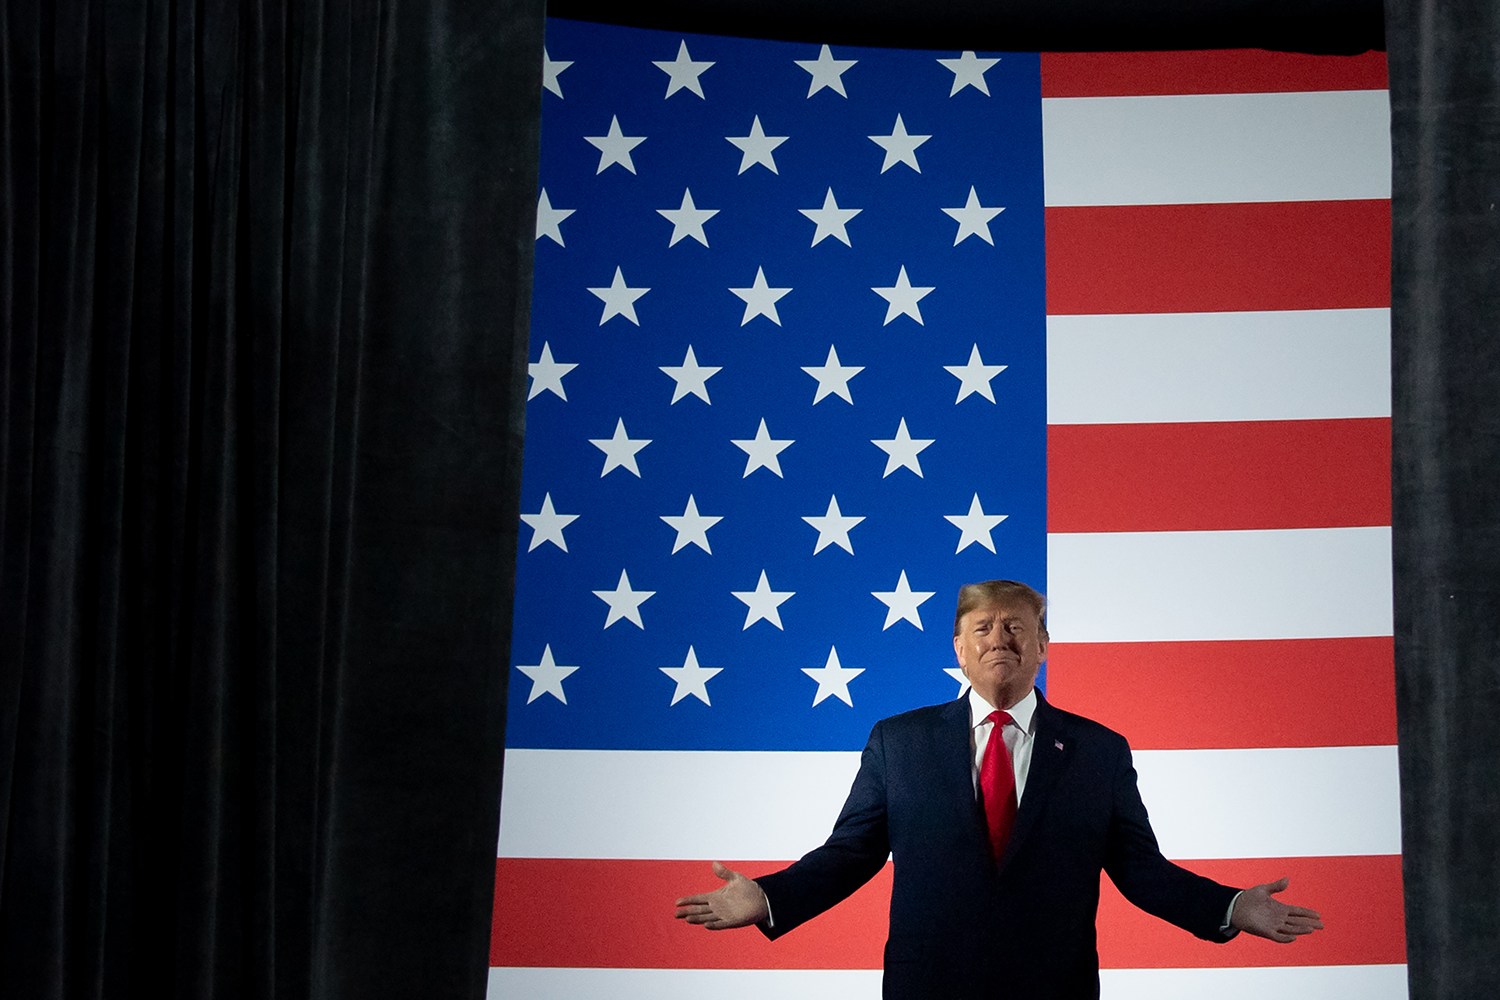 President Trump arrives for a campaign rally at Huntington Center in Toledo, Ohio, on Jan. 9. SAUL LOEB/AFP via Getty Images